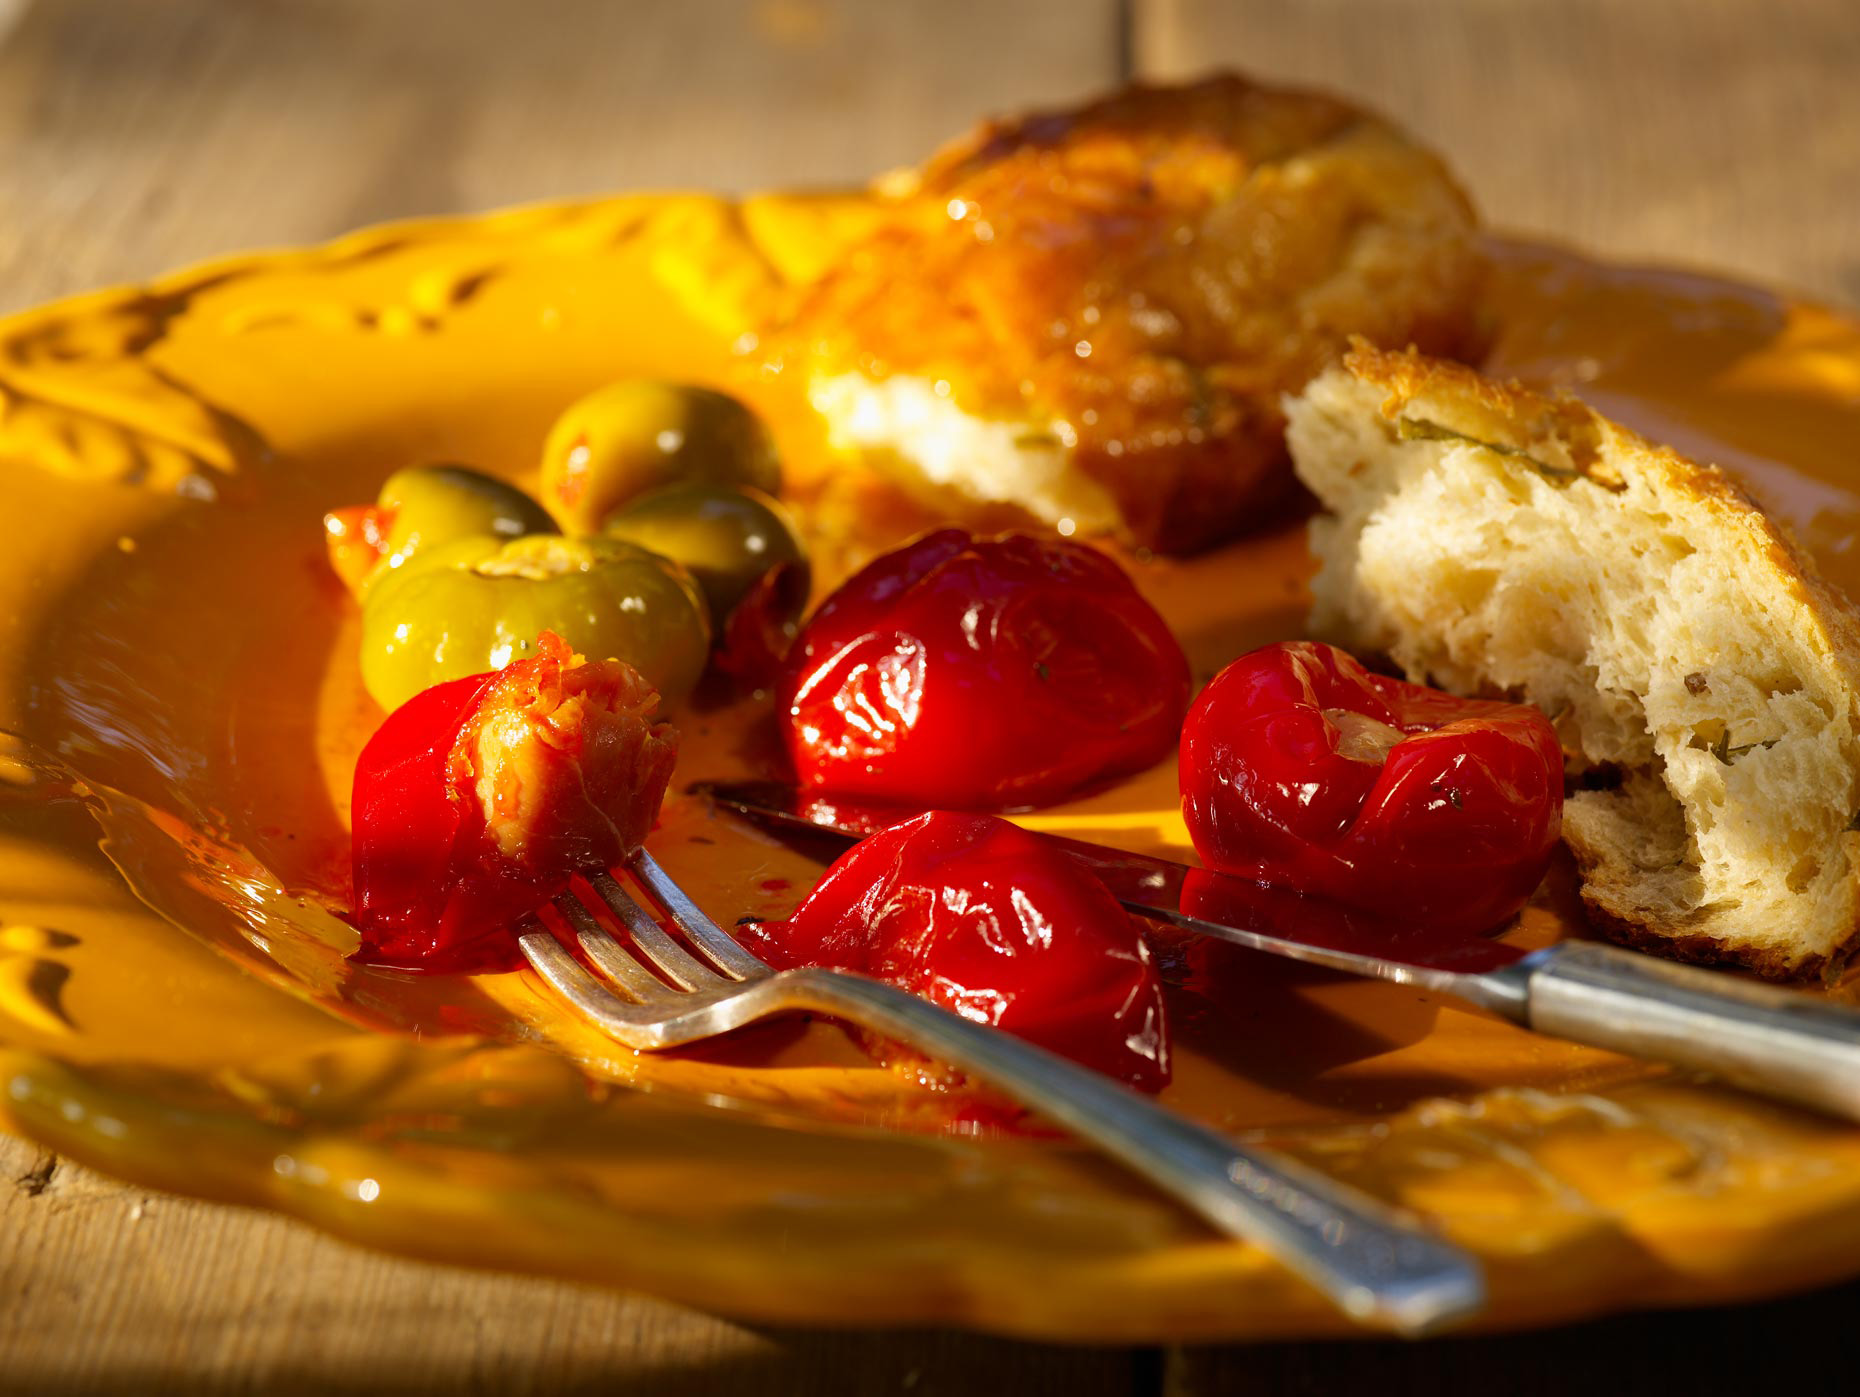 Food Photography | Red &Green Peppers with Bread